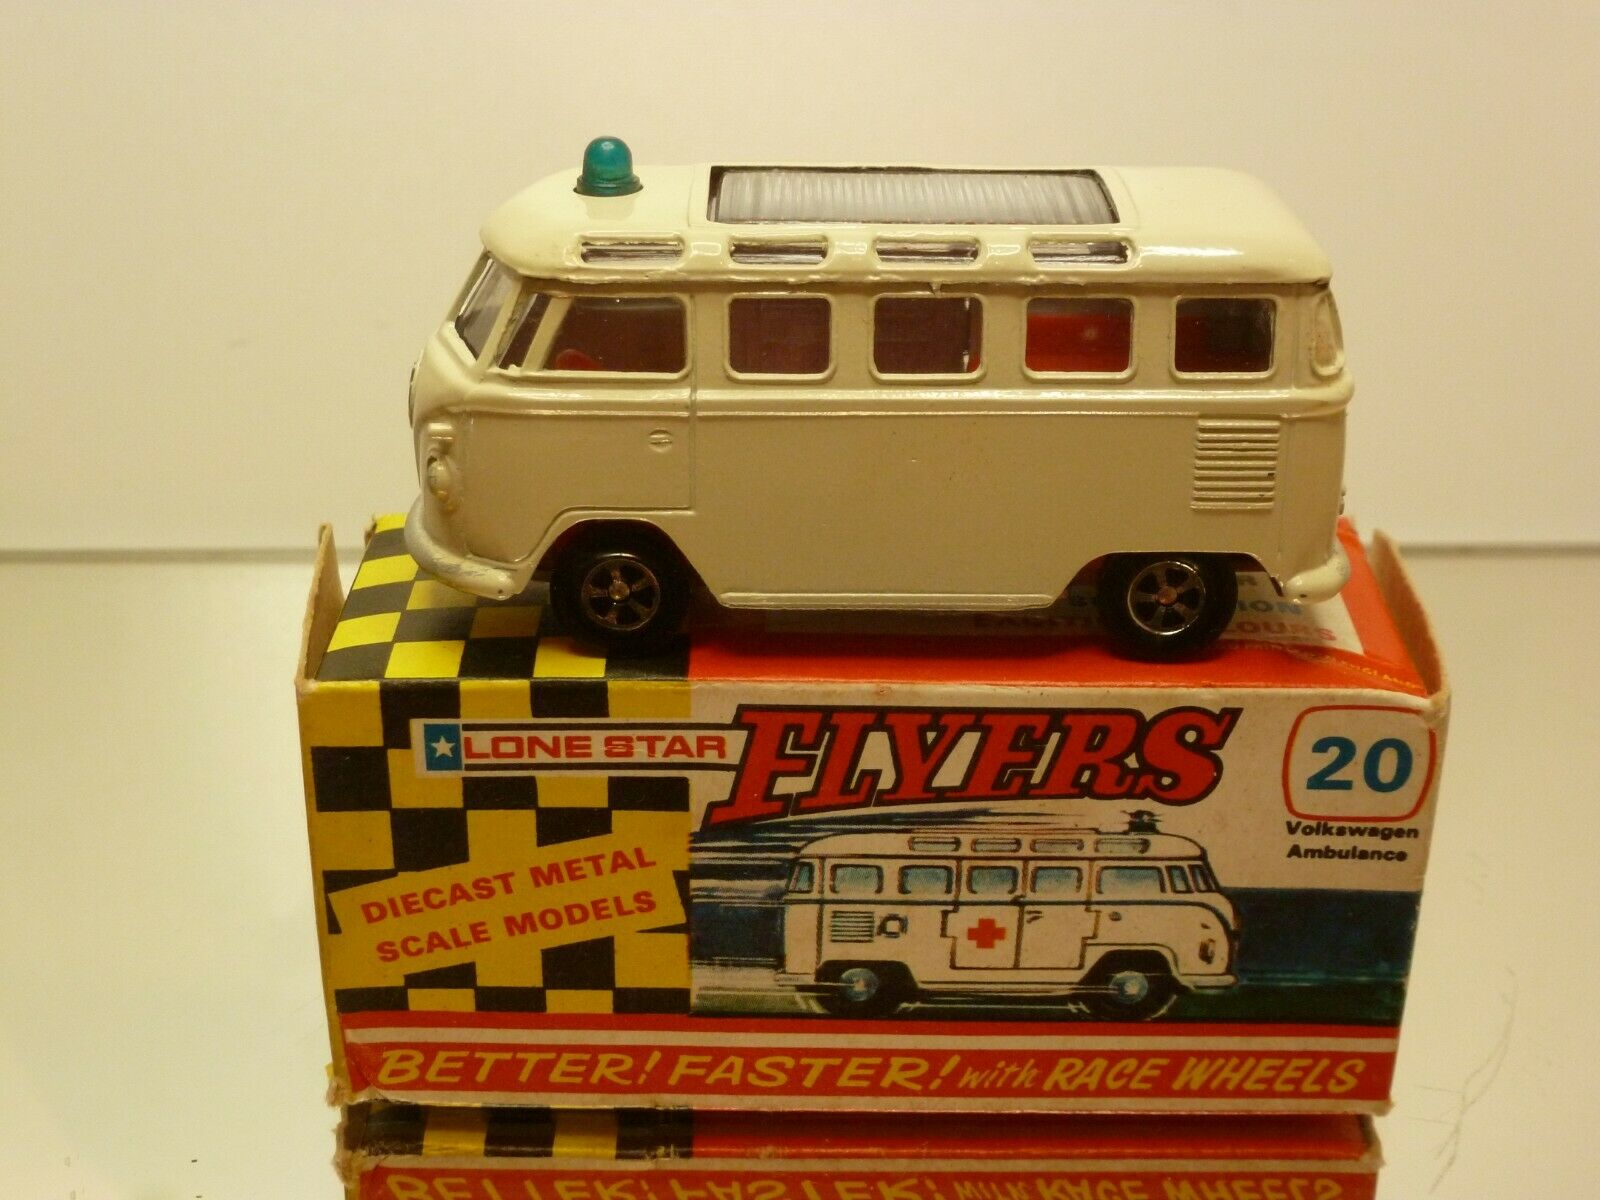 FLYERS LONEEstrella 20 VW VOLKSWAGEN MICROBUS T1 AMBULANCE - 1 59 - EXCELLENT IN BOX